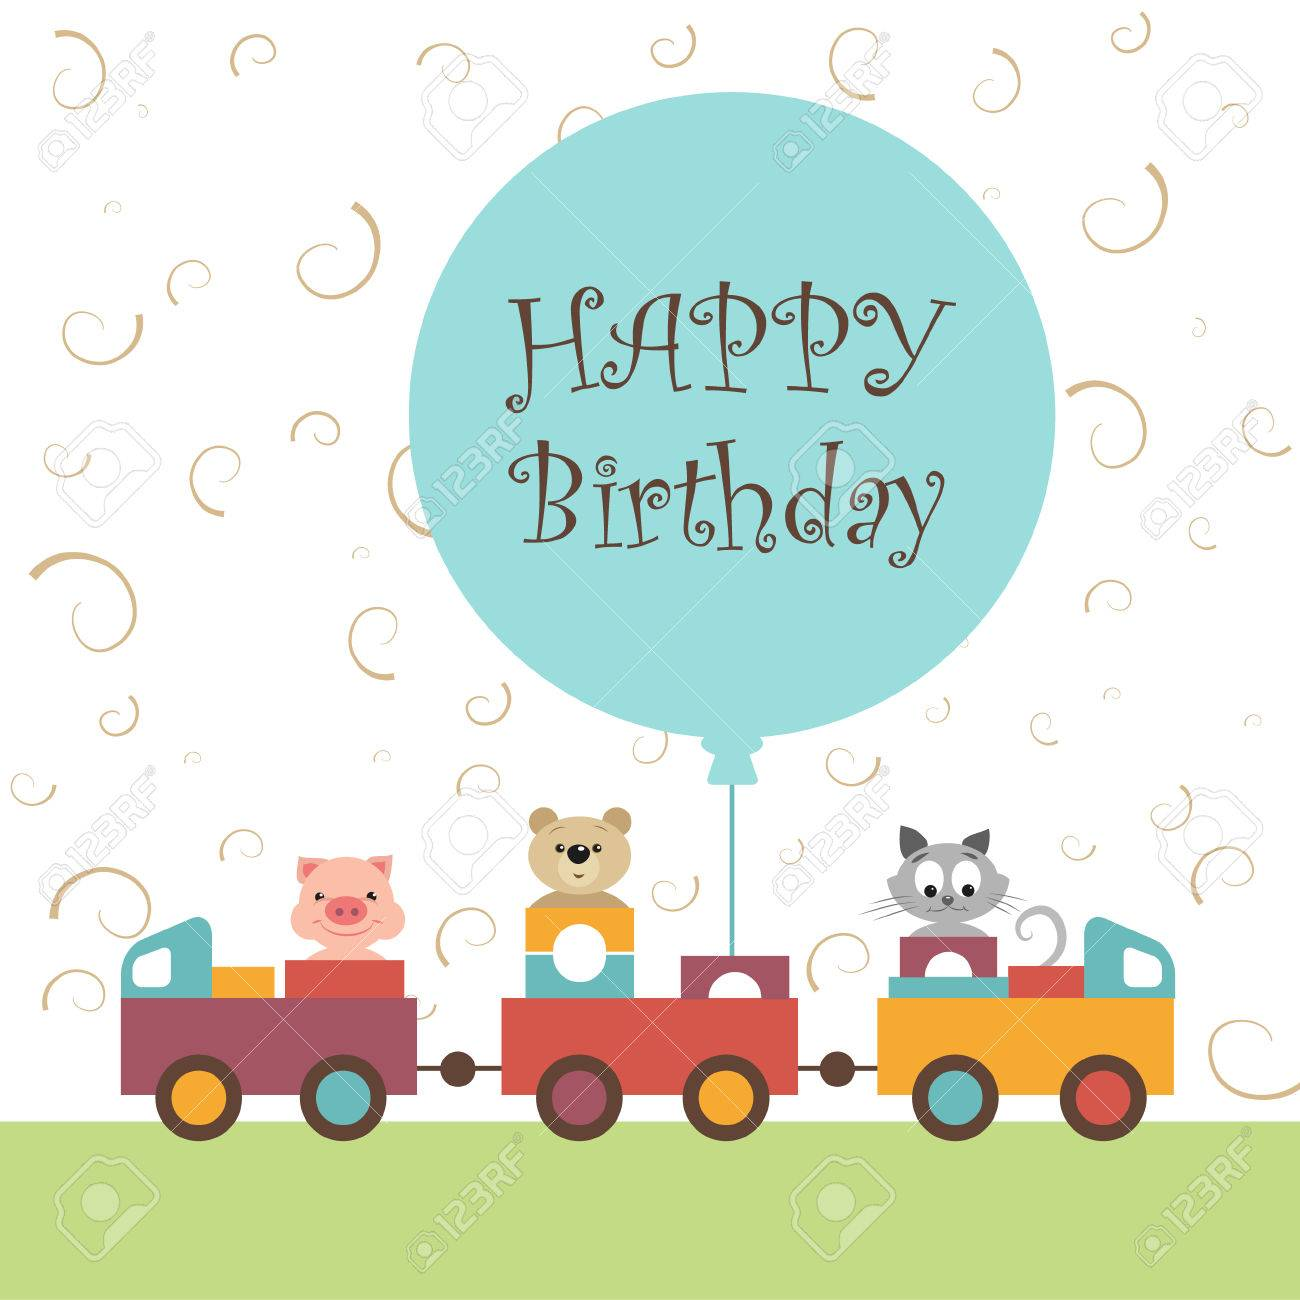 Greeting card for baby album happy birthday colorful train greeting card for baby album happy birthday colorful train carries toys kindly and m4hsunfo